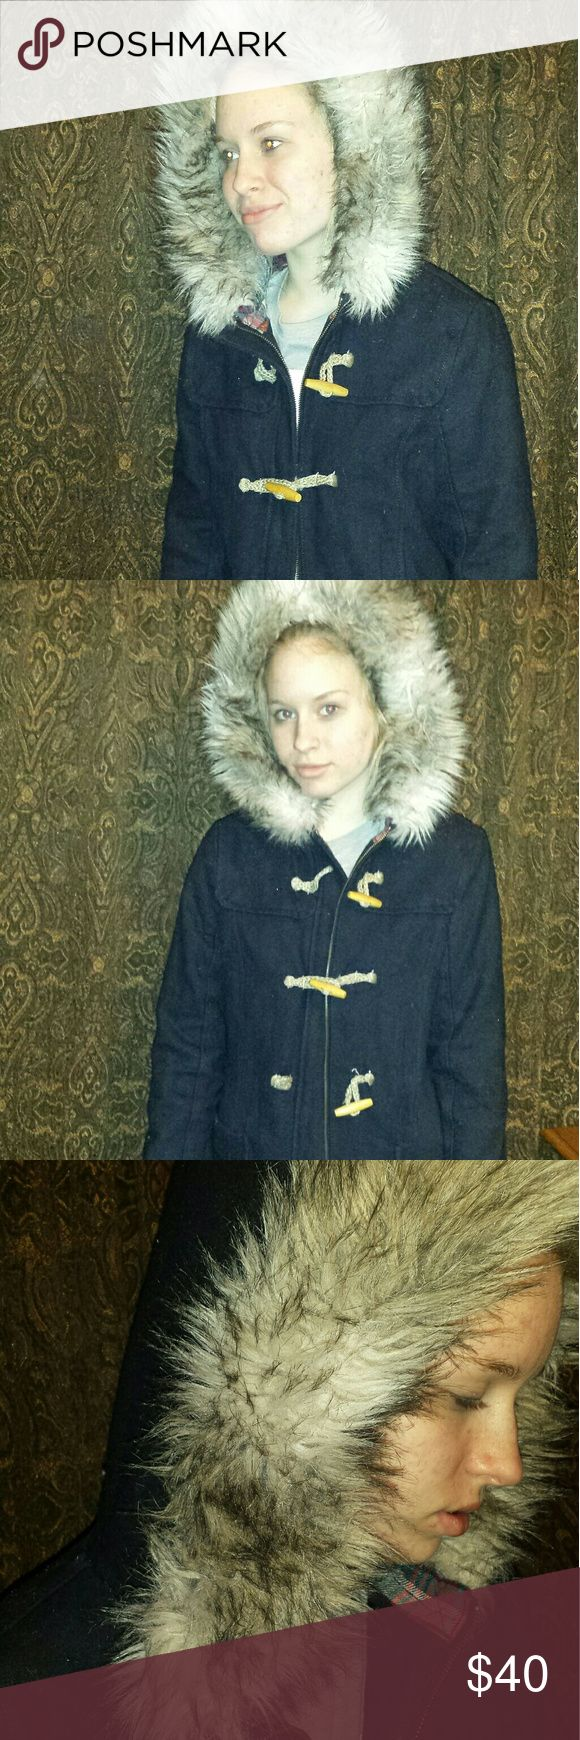 American Eagle Outfitters Coat Blue American Eagle  coat with fur hood. Gently used condition. American Eagle Outfitters Jackets & Coats Pea Coats